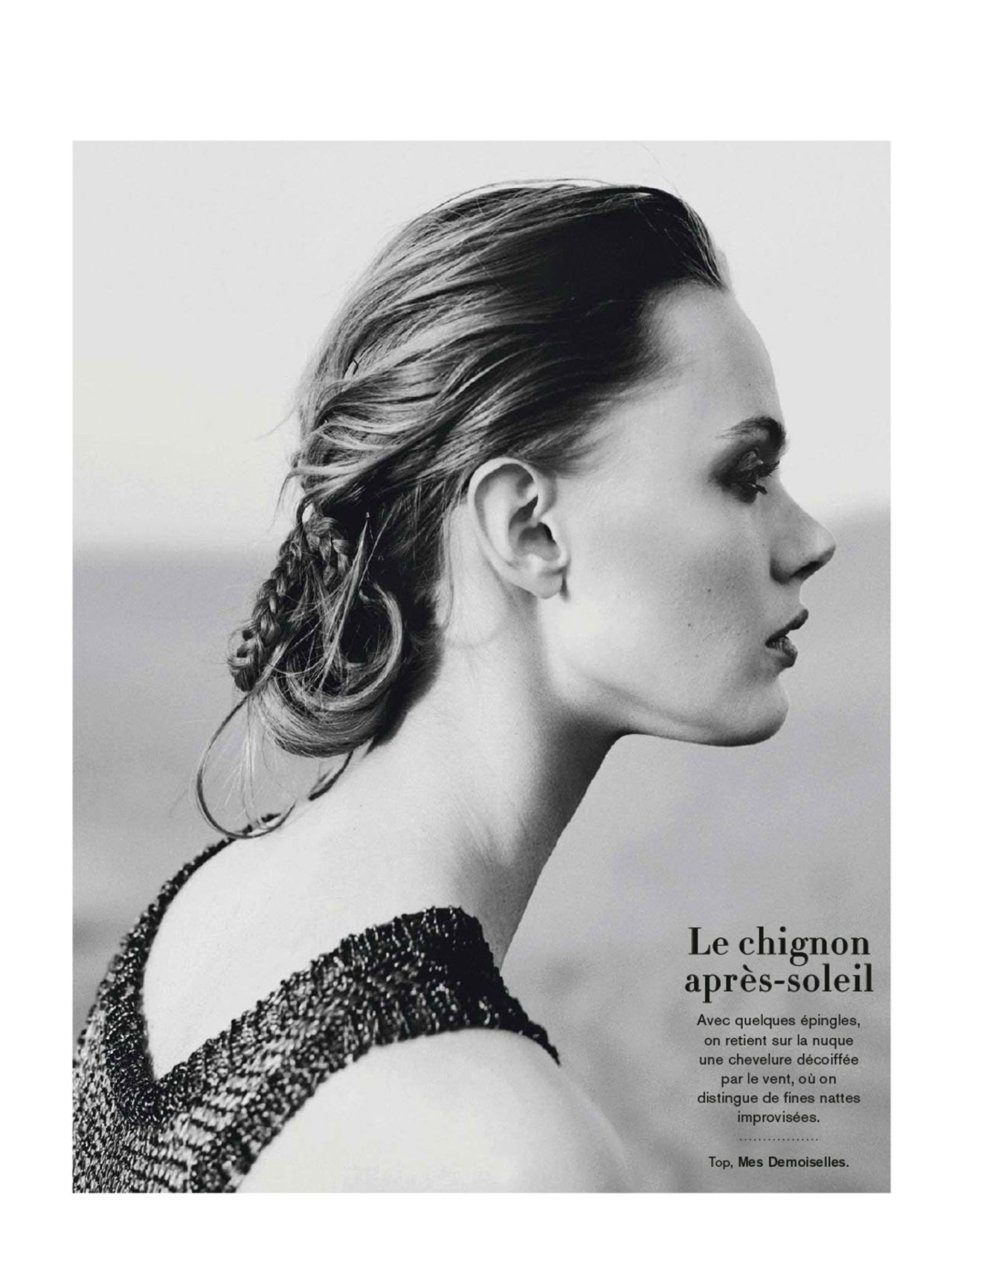 Frida Gustavsson Topless 19 TheFappening.nu